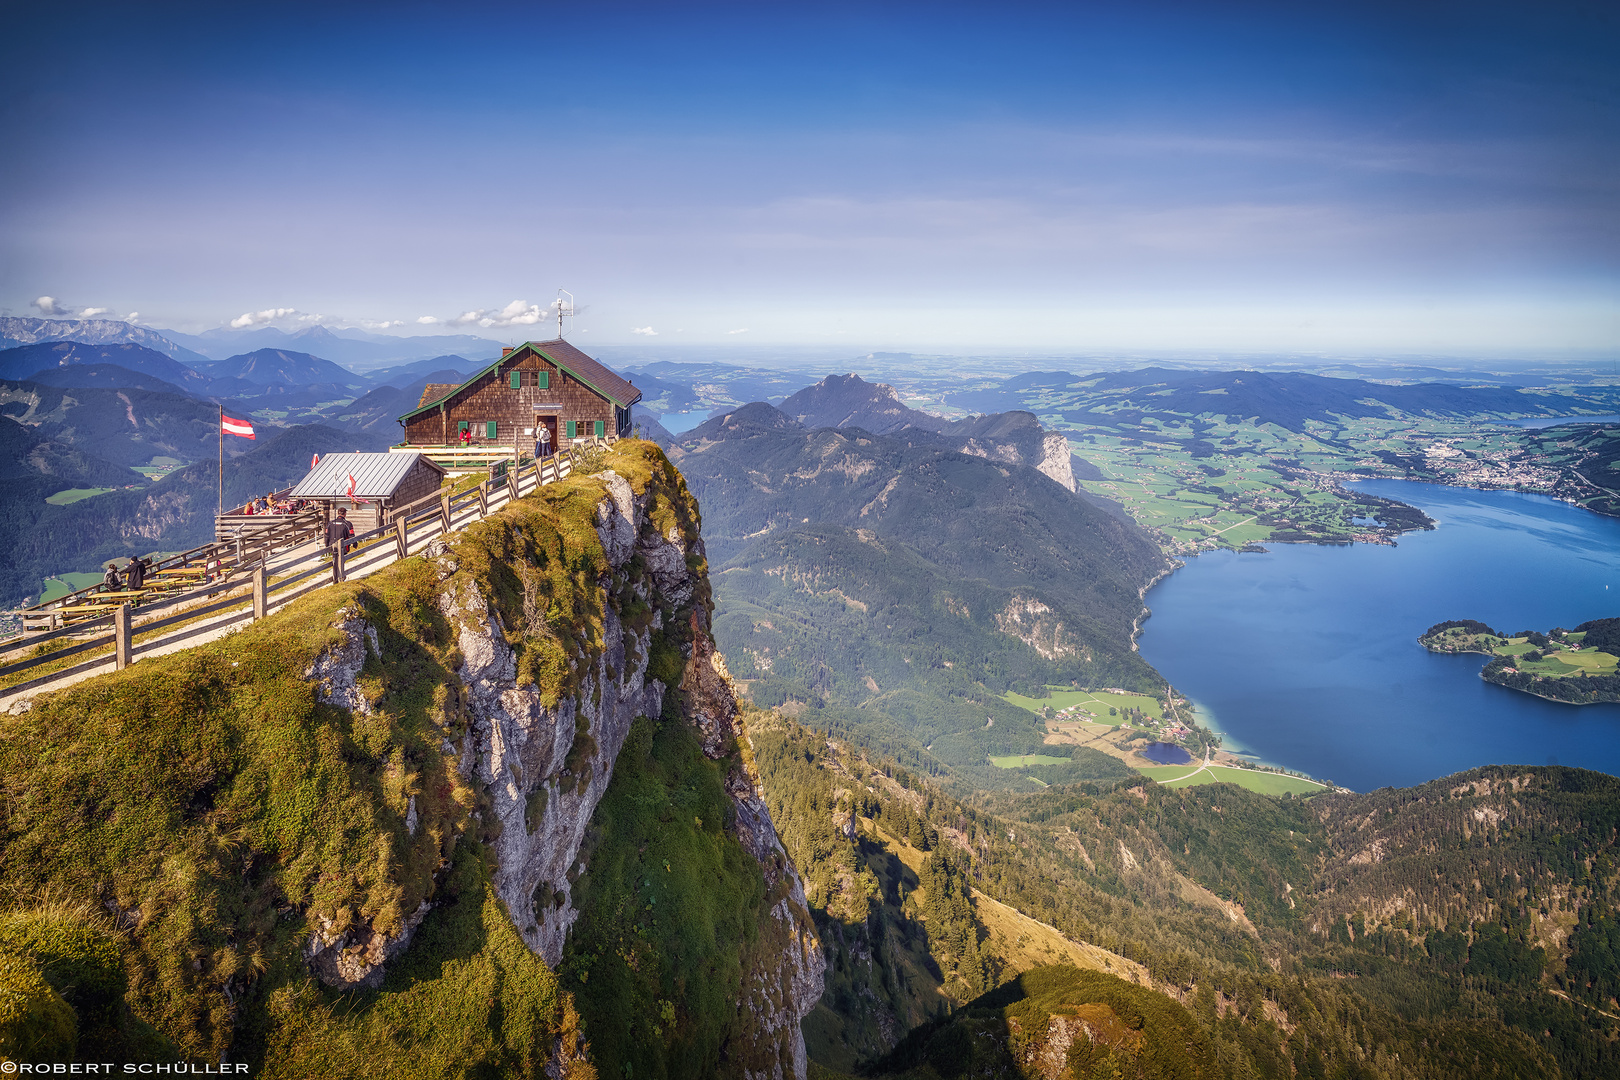 Schafberg: Knocking on heaven's door.